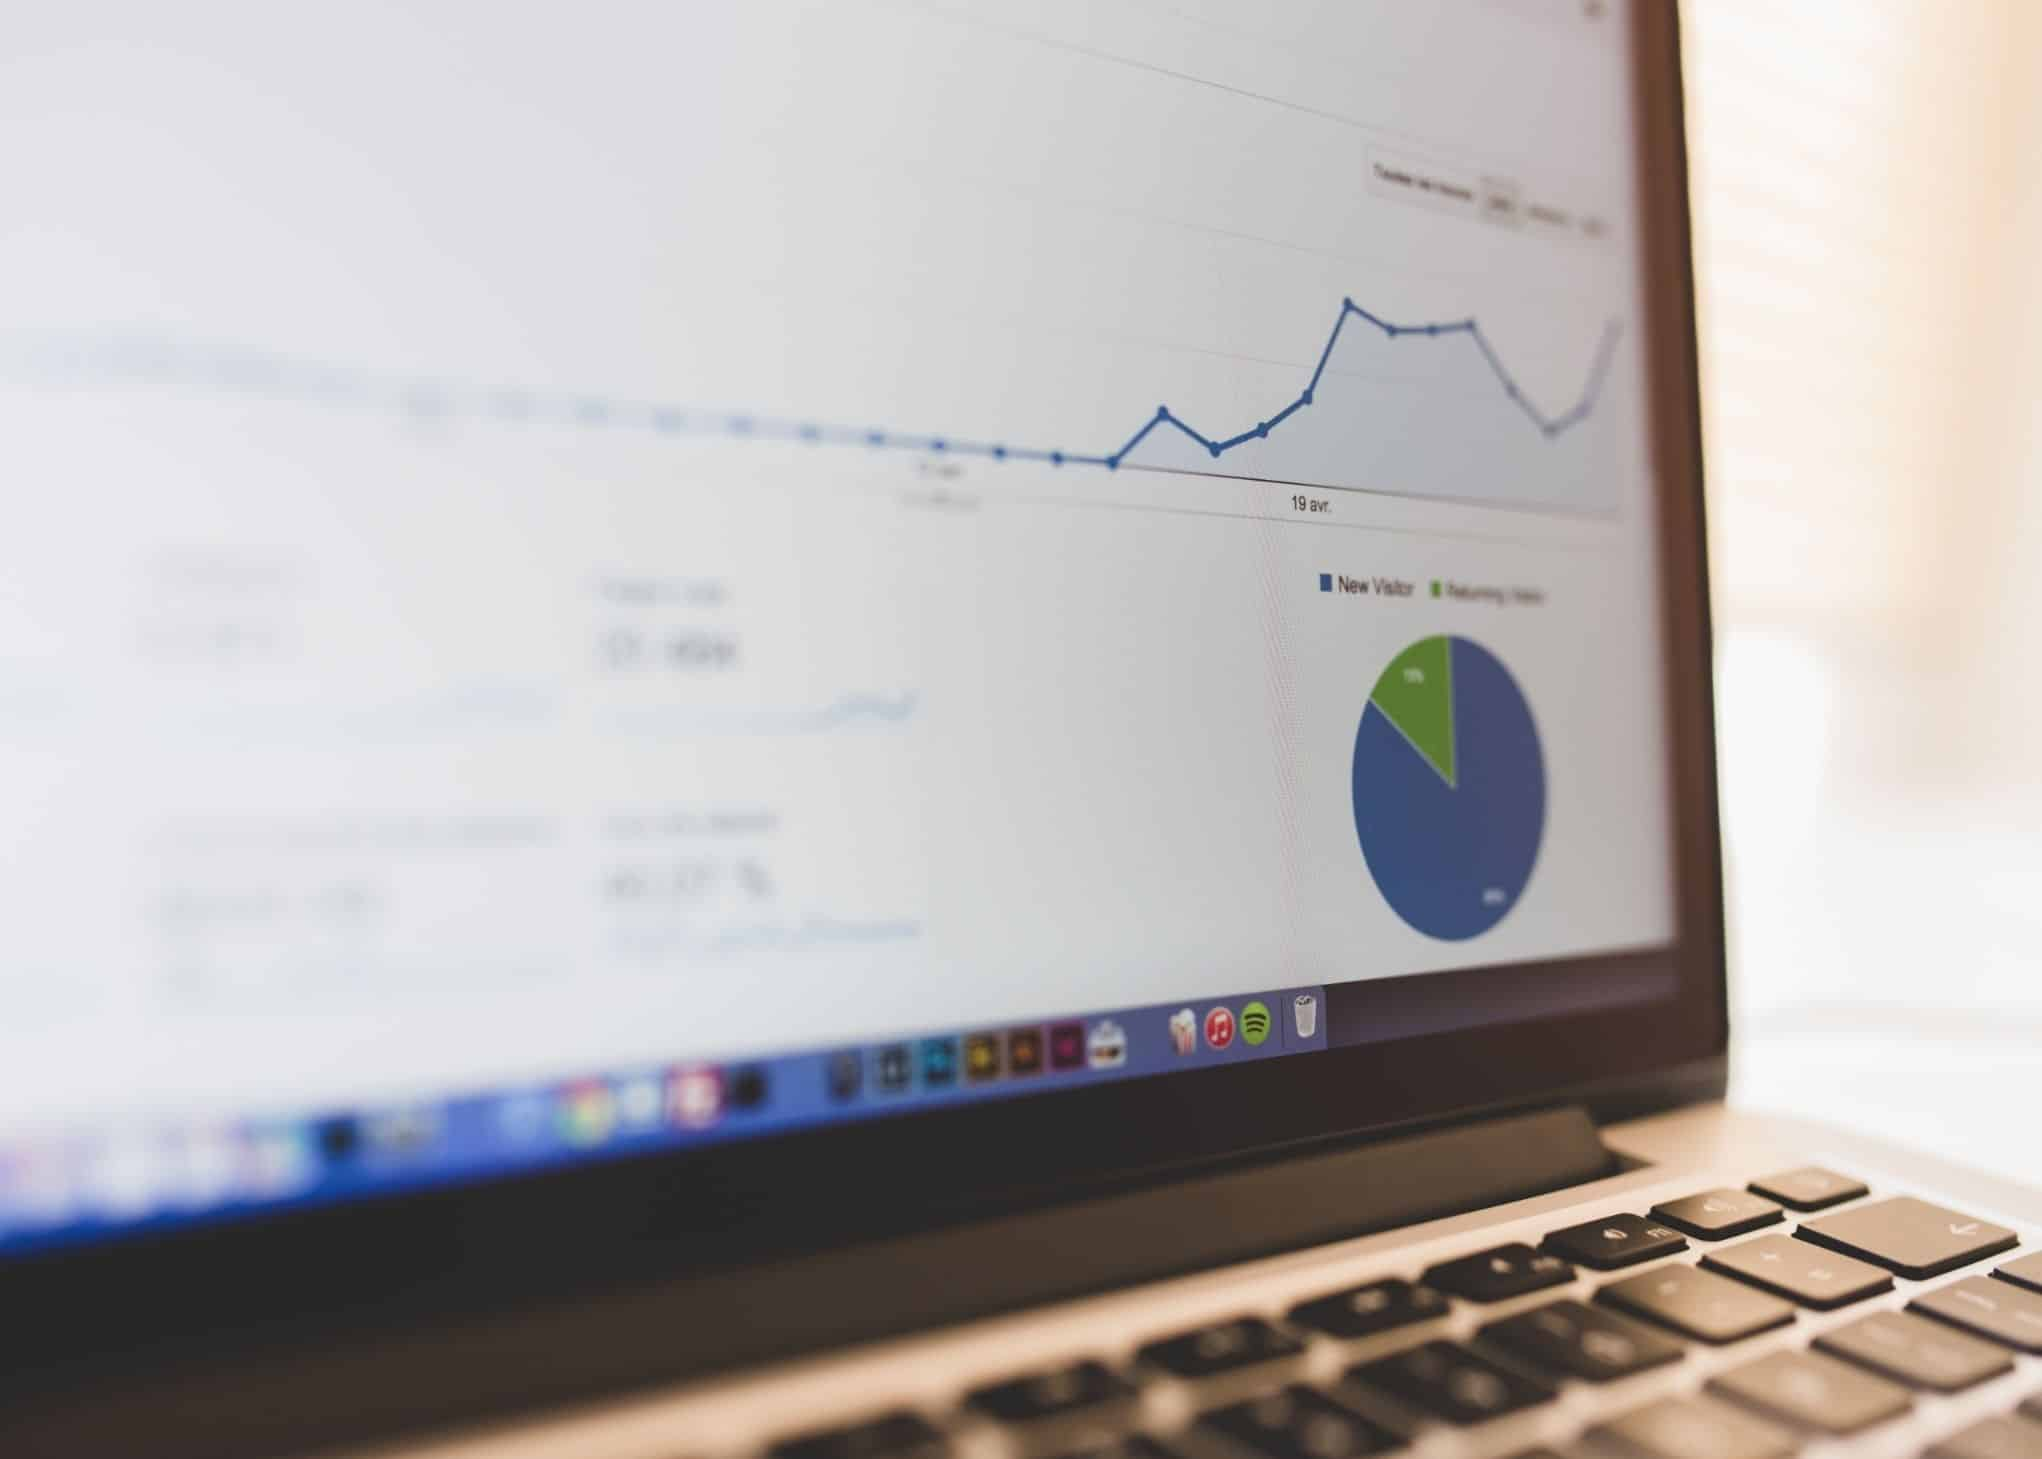 A Close Look At Digital Marketing Stats on a Laptop